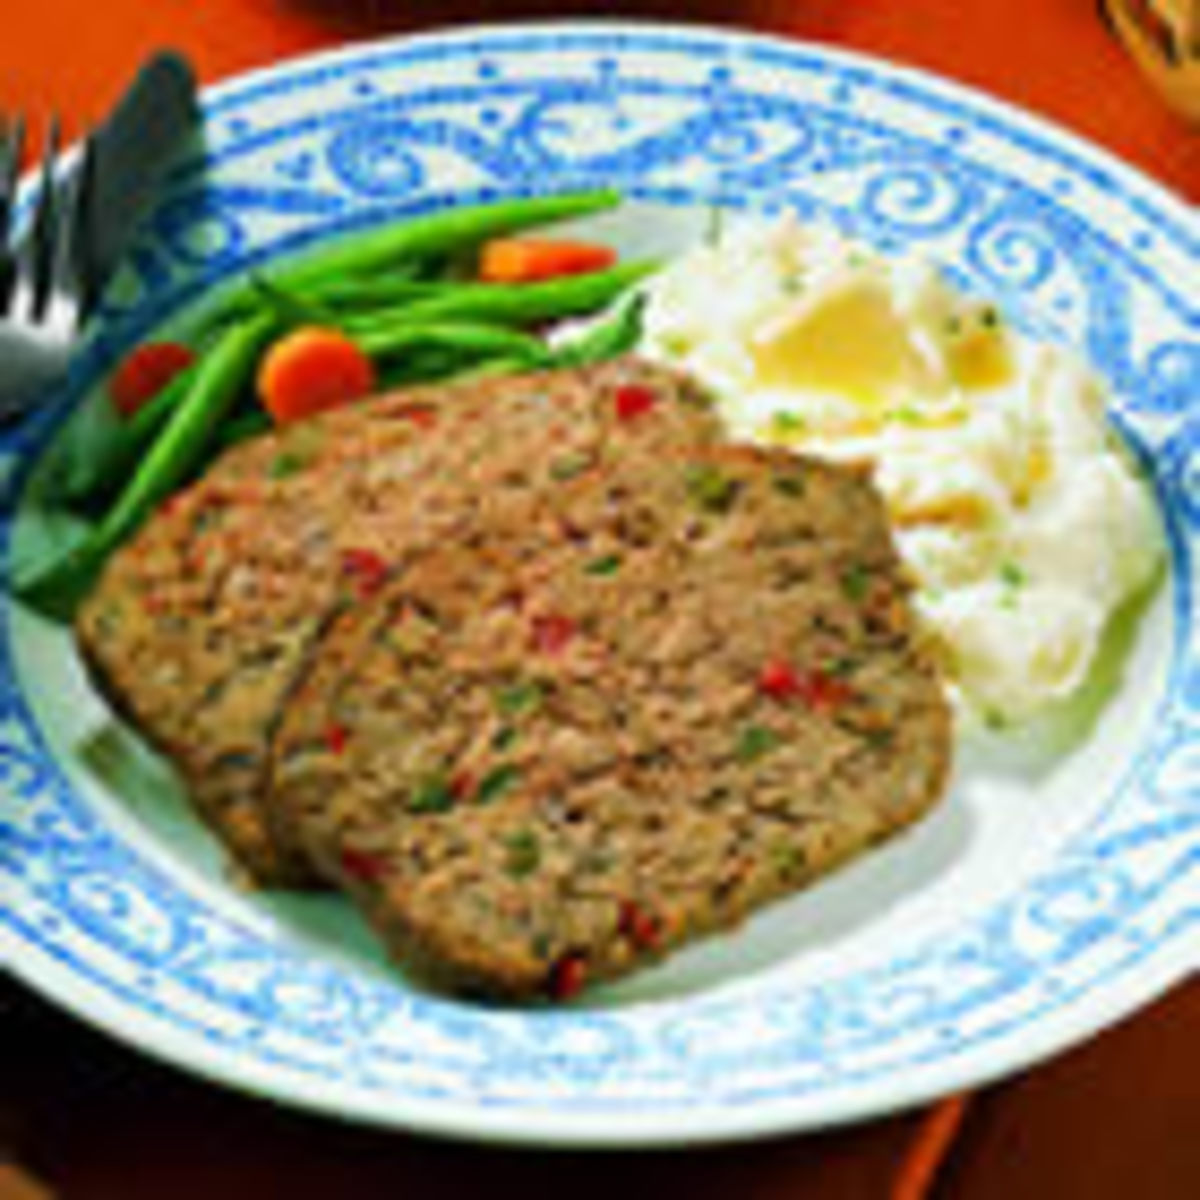 Home-Style Meatloaf (from Allrecipes)